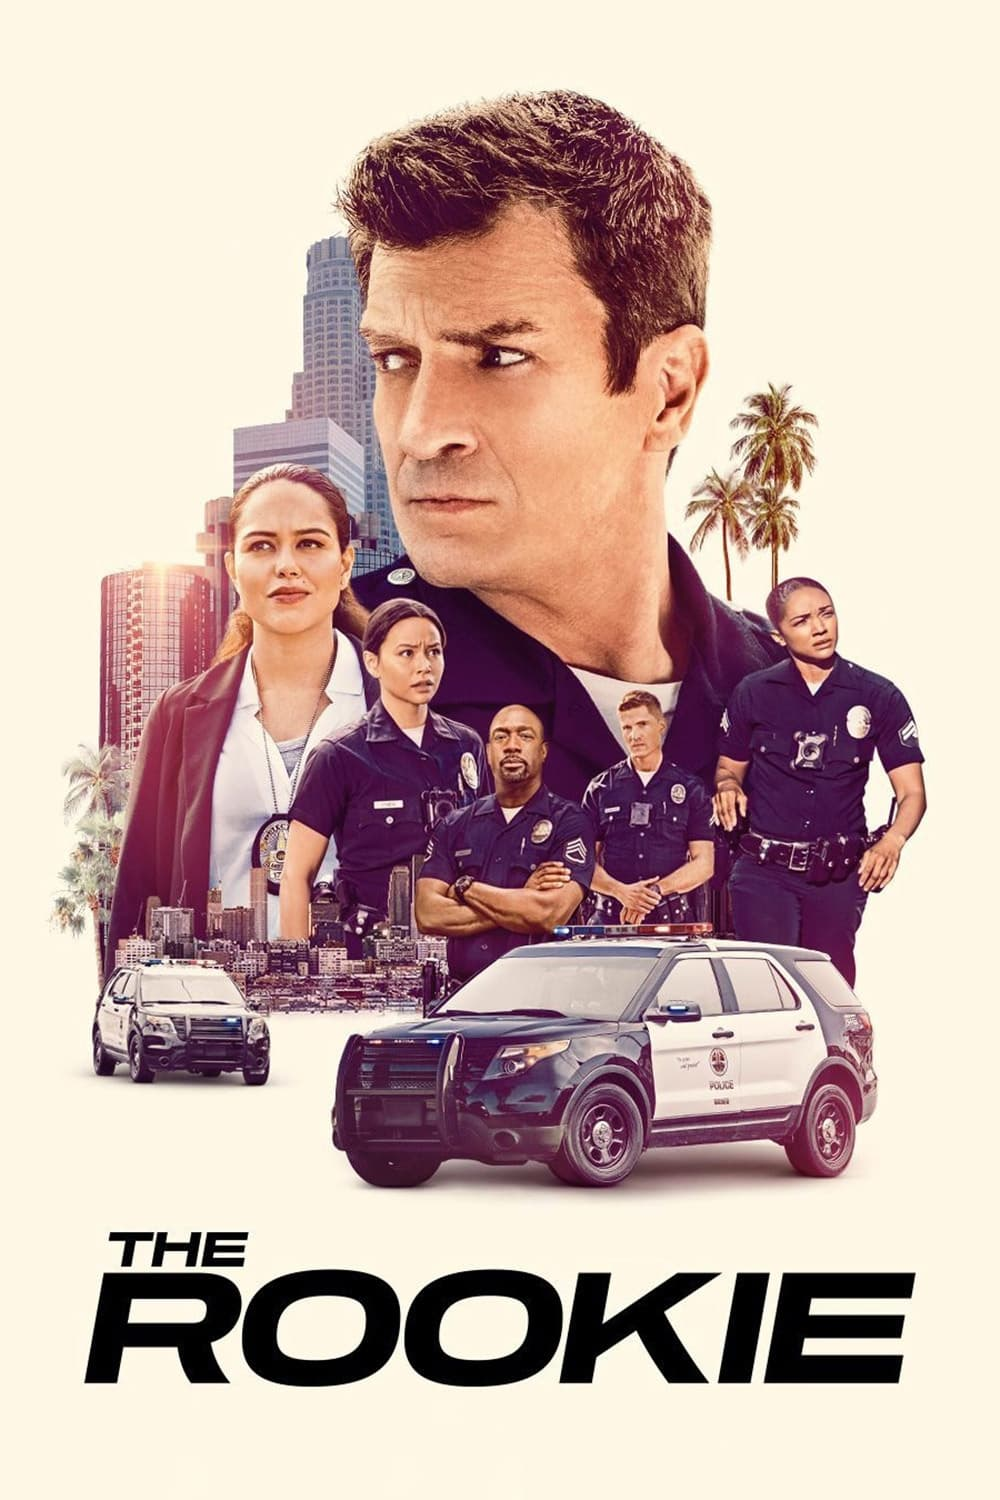 The Rookie TV Shows About Crime Investigation